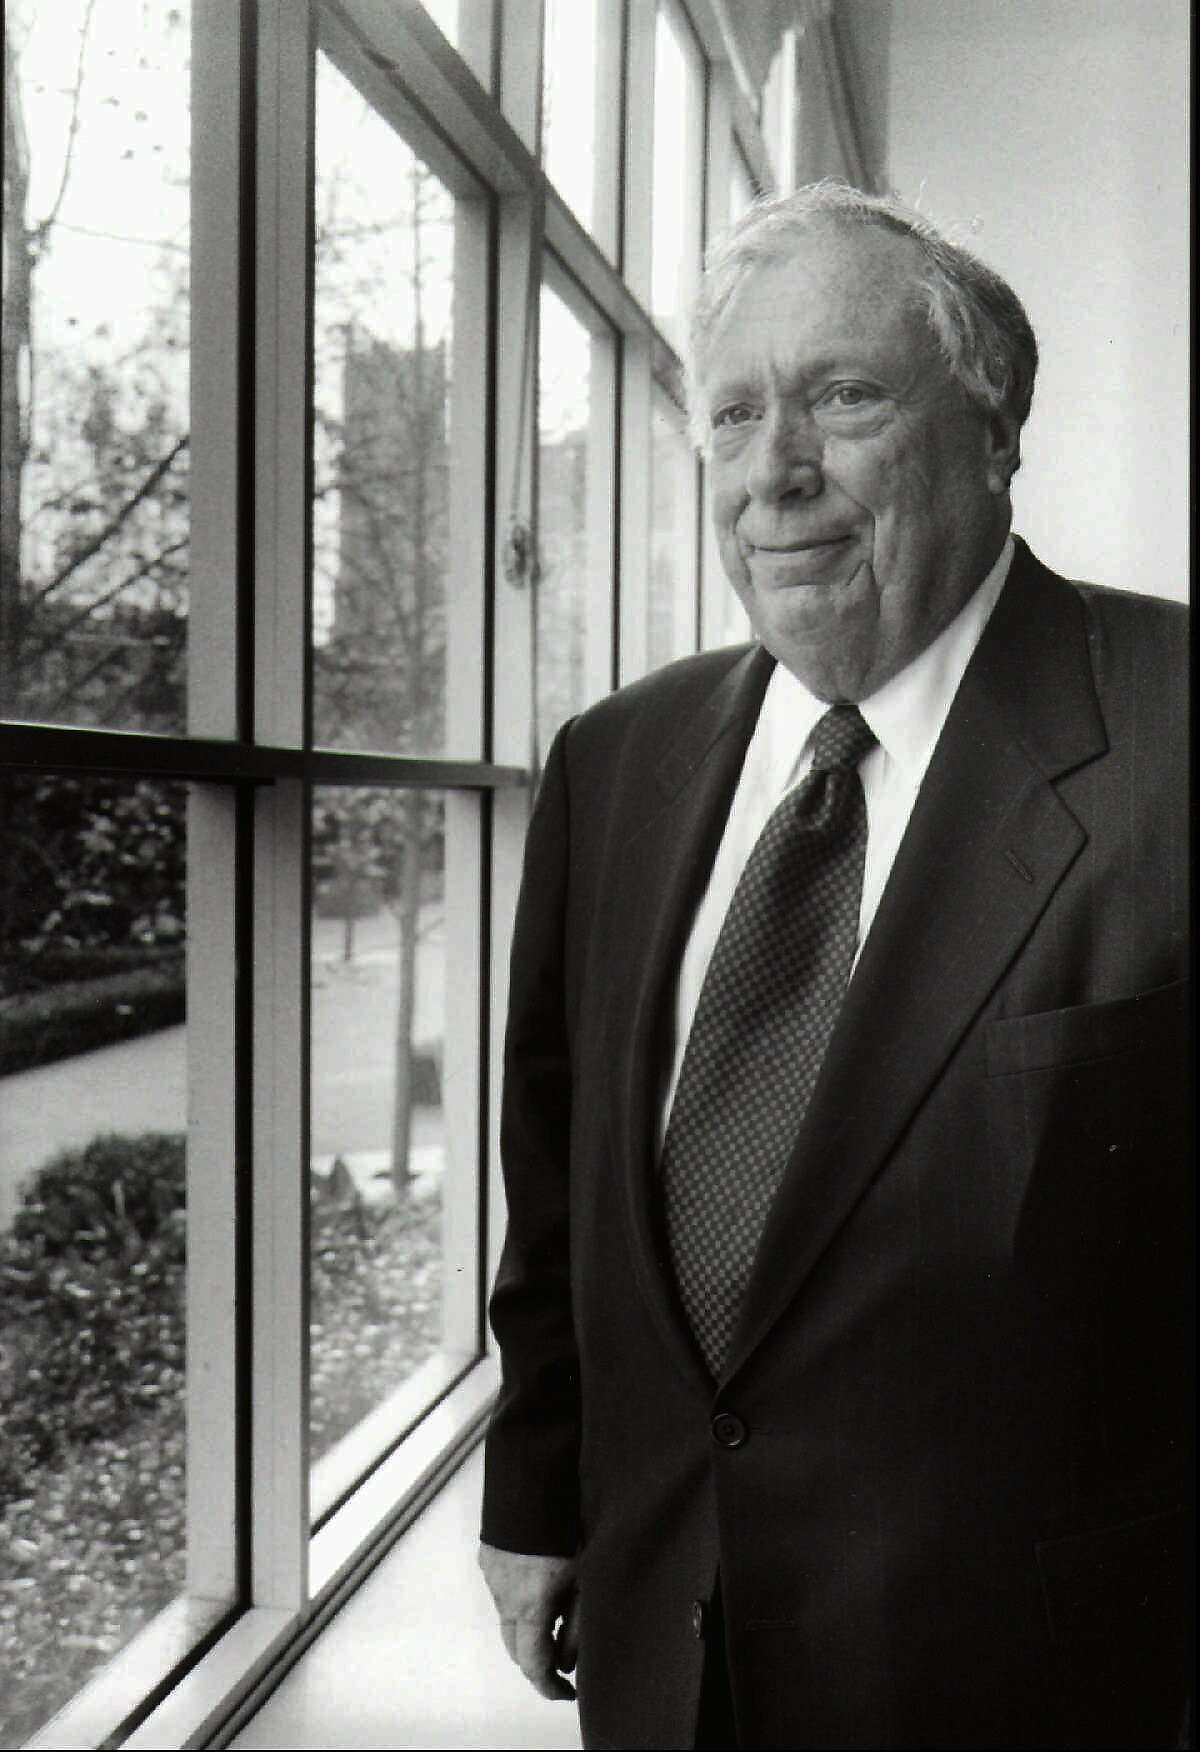 The 9th U.S. Circuit Court of Appeals Judge Stephen Reinhardt is shown in this 1997 photo. One of the nation's most liberal and outspoken federal judges, Reinhardt unapologeticaly says that judges should not change their view of the law